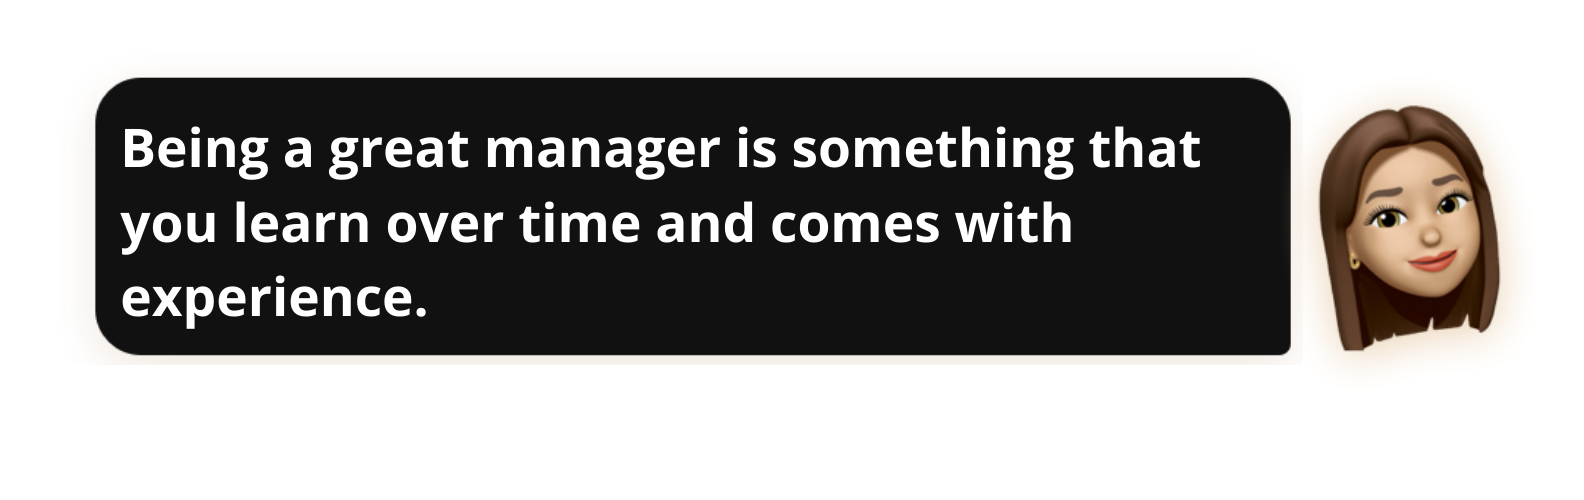 Being a great manager is something that you learn over time and comes with experience - Popwork